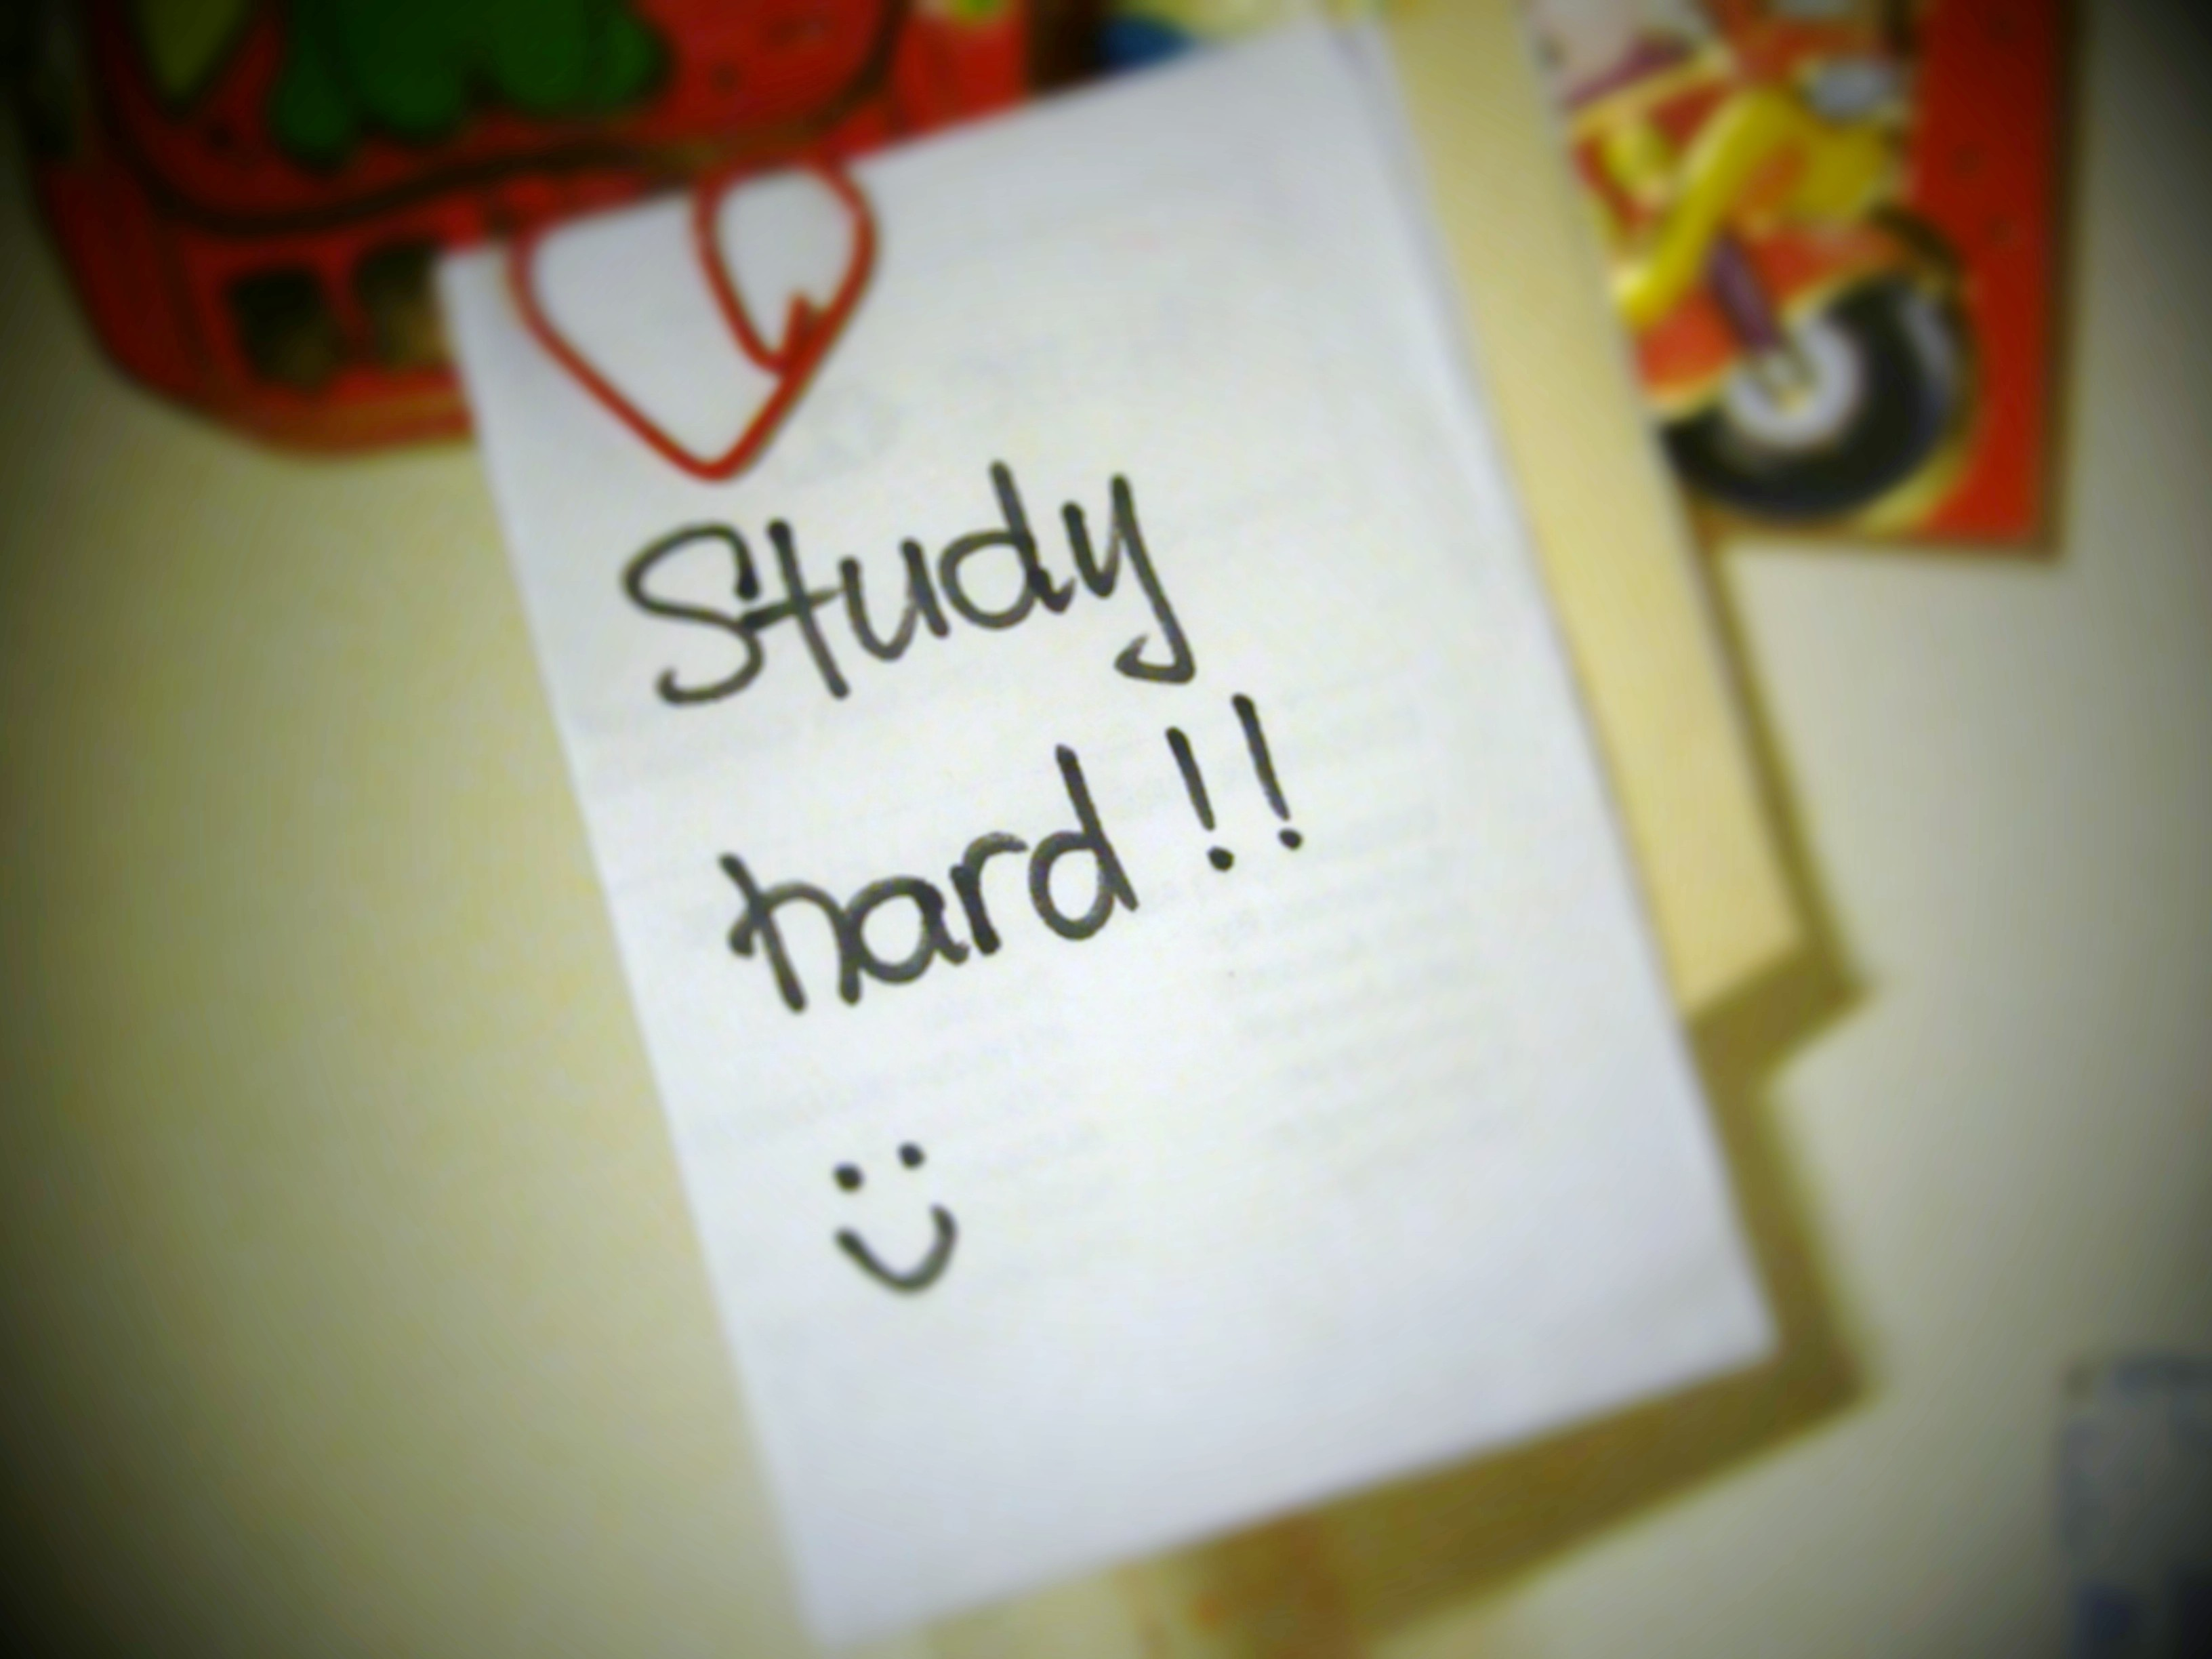 What study habits should you imbibe as a student?